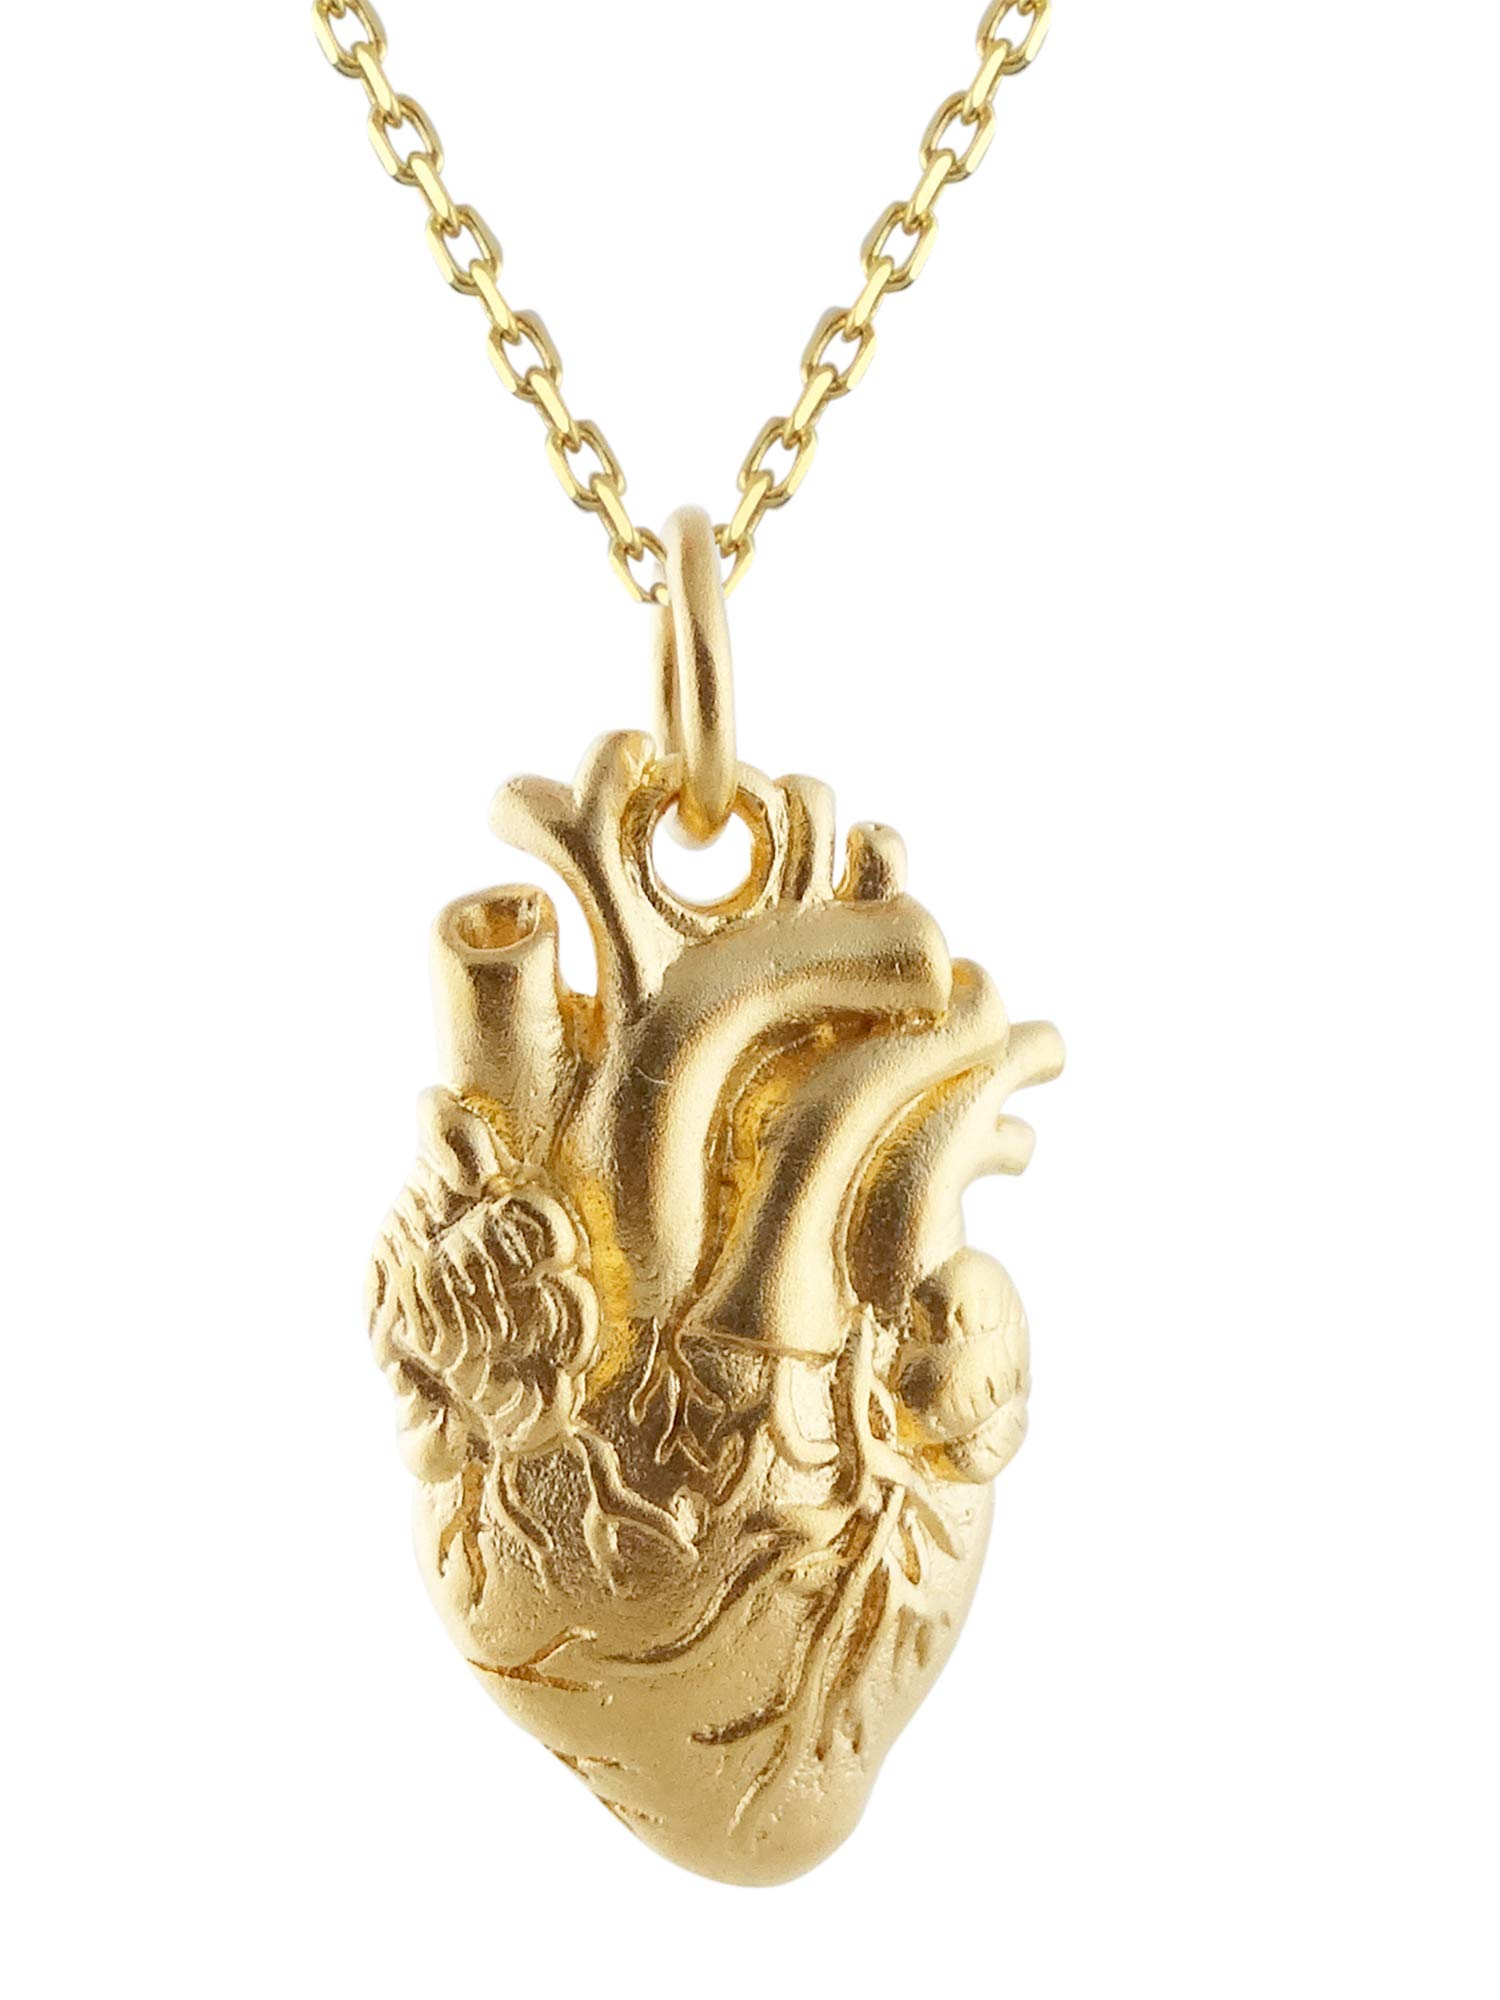 FashionJunkie4Life 24K Gold Plated Sterling Silver Anatomical Heart Charm Necklace, 18""